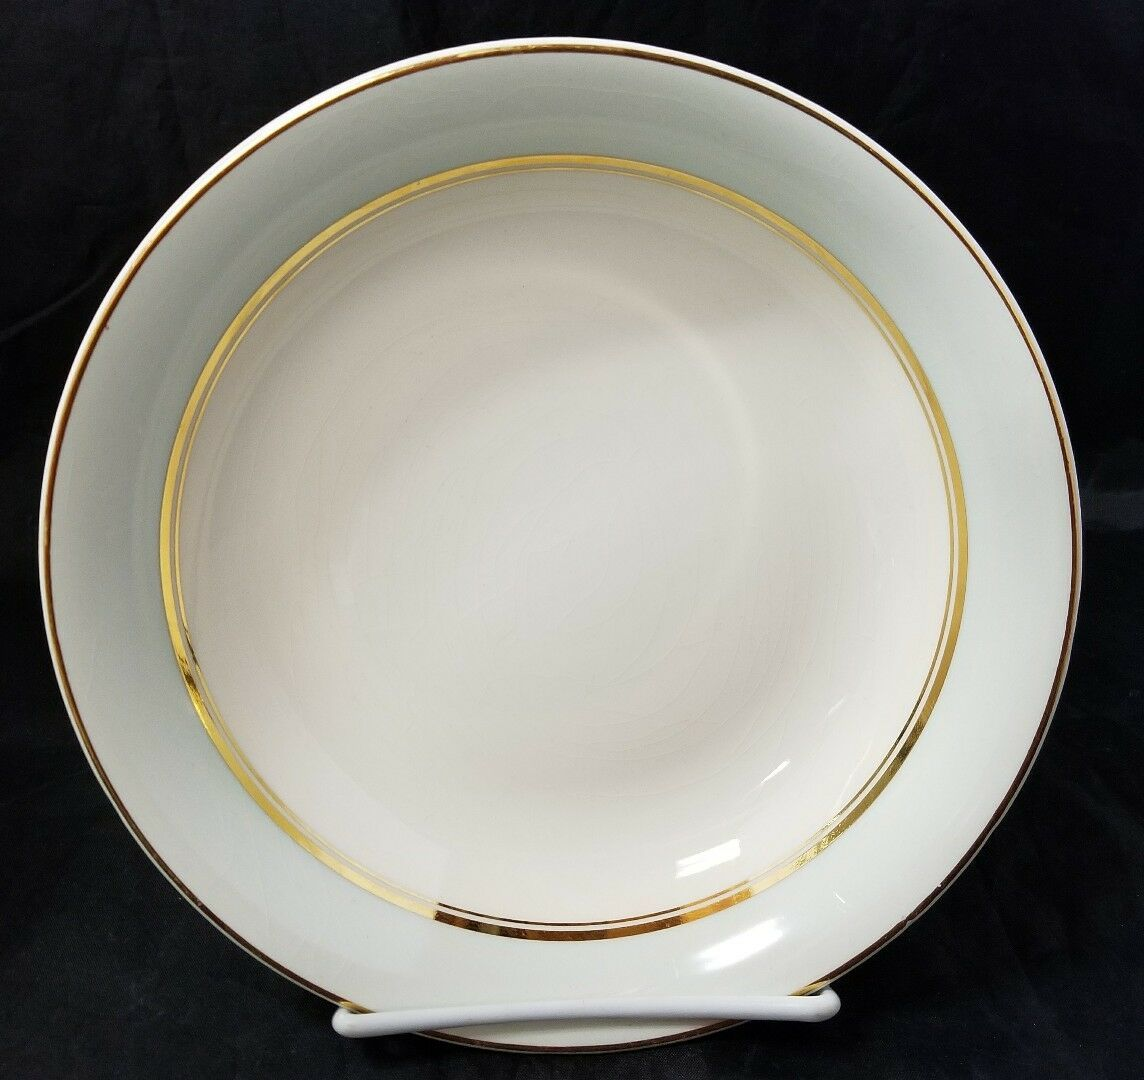 The French Saxon China Co Soup Salad Bowls Set of 4, 22kt Gold, Pottery Made USA image 2